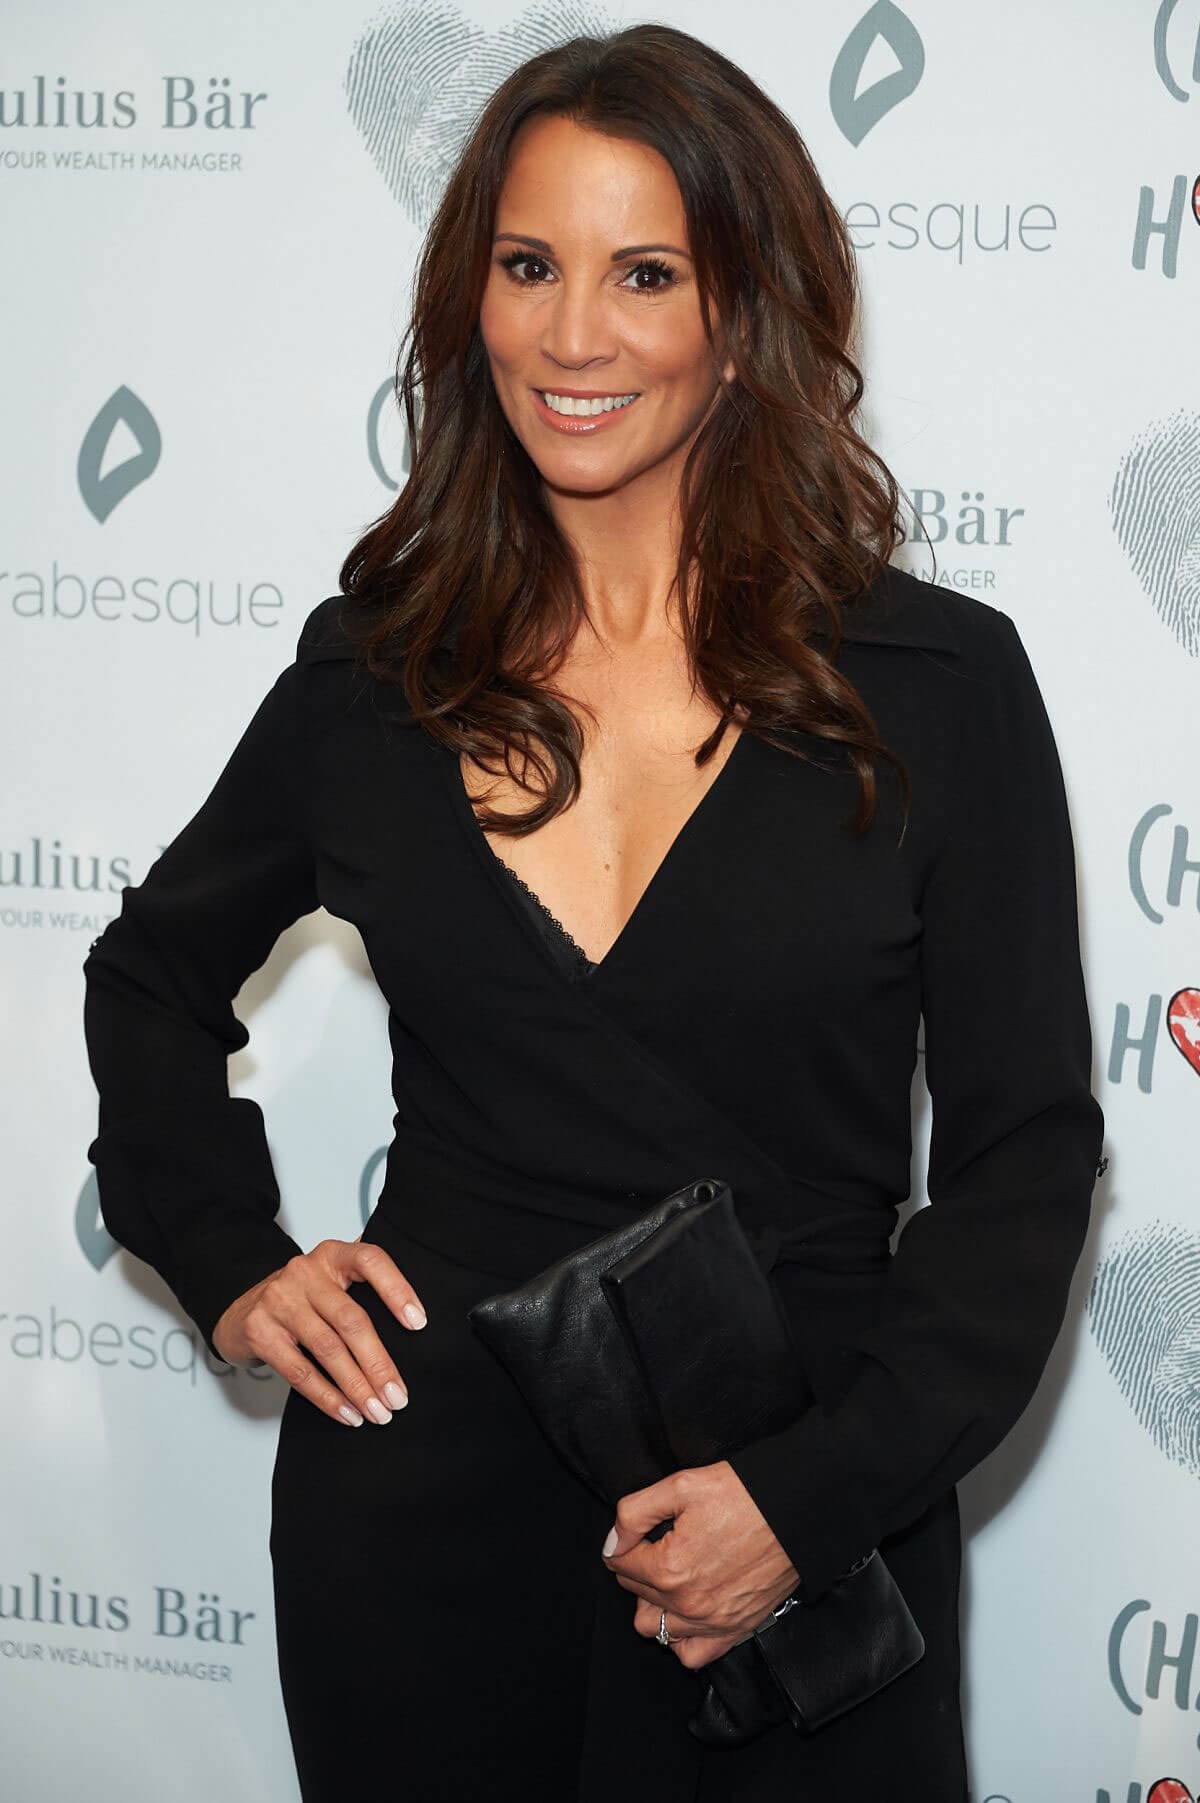 Andrea McLean in Black Outfit at Chain of Hope Gala in London